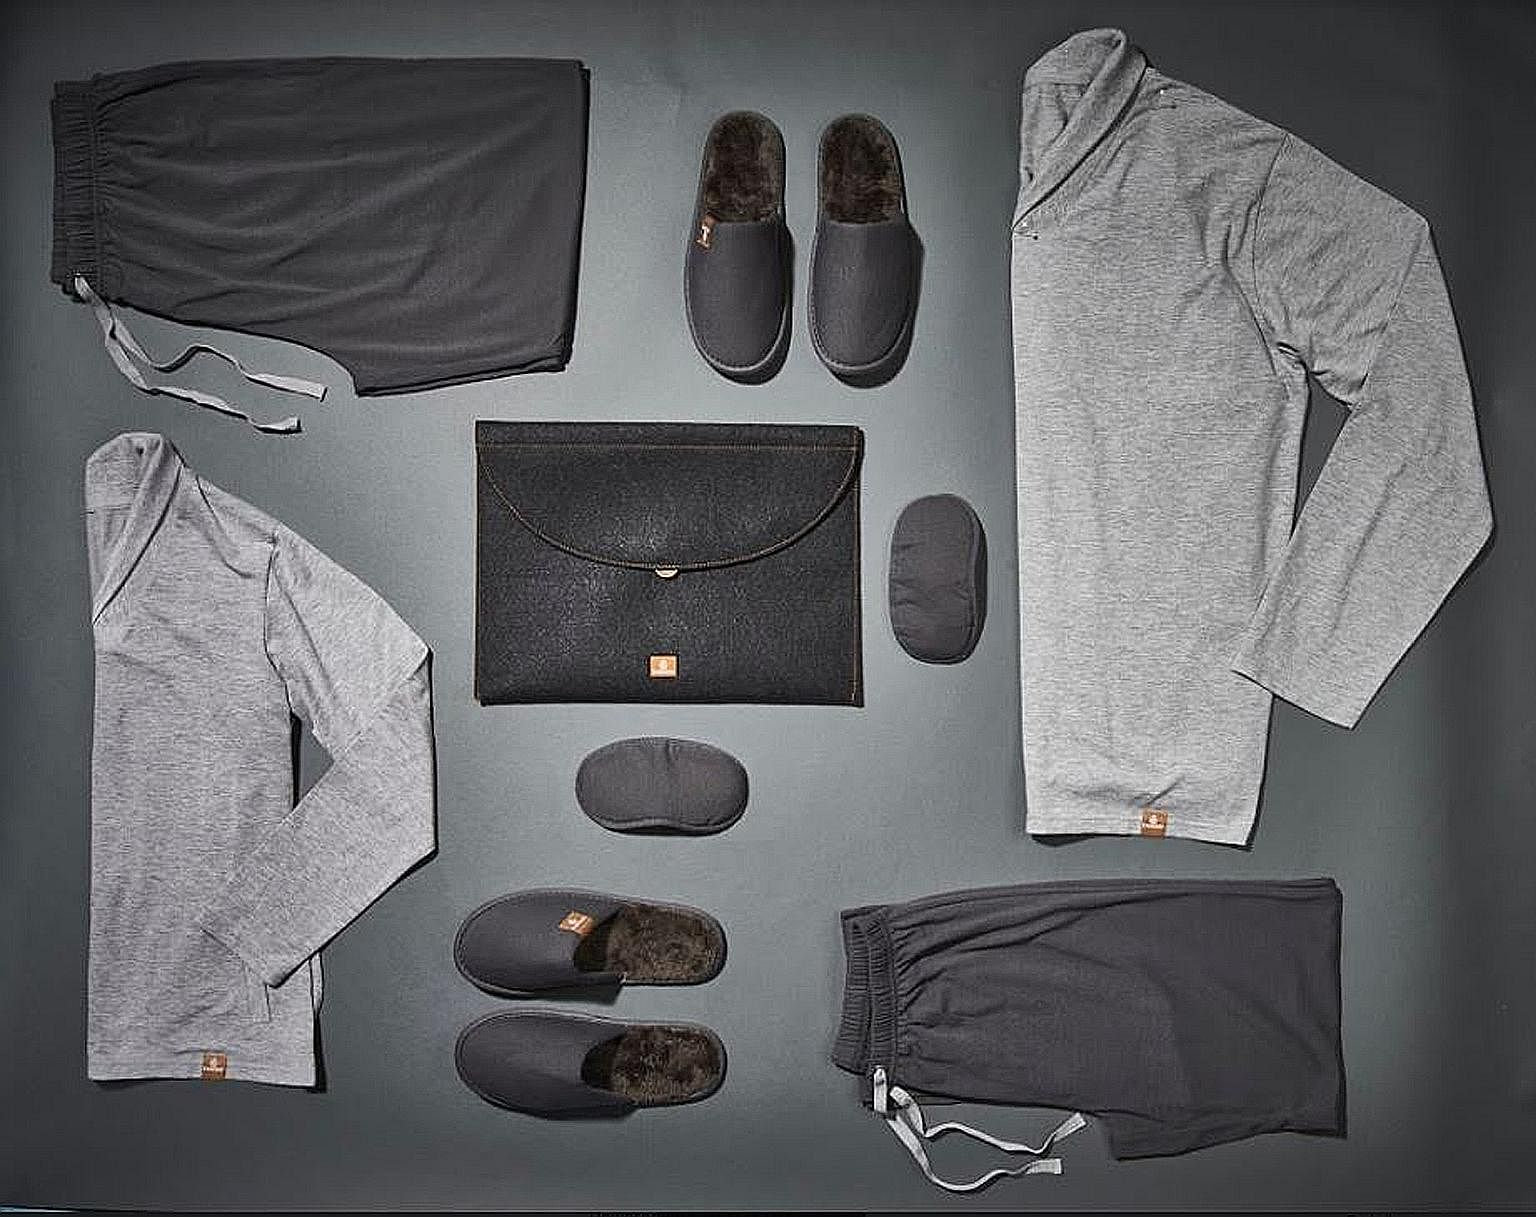 Emirates' new pyjamas set for travellers in its first class cabin.